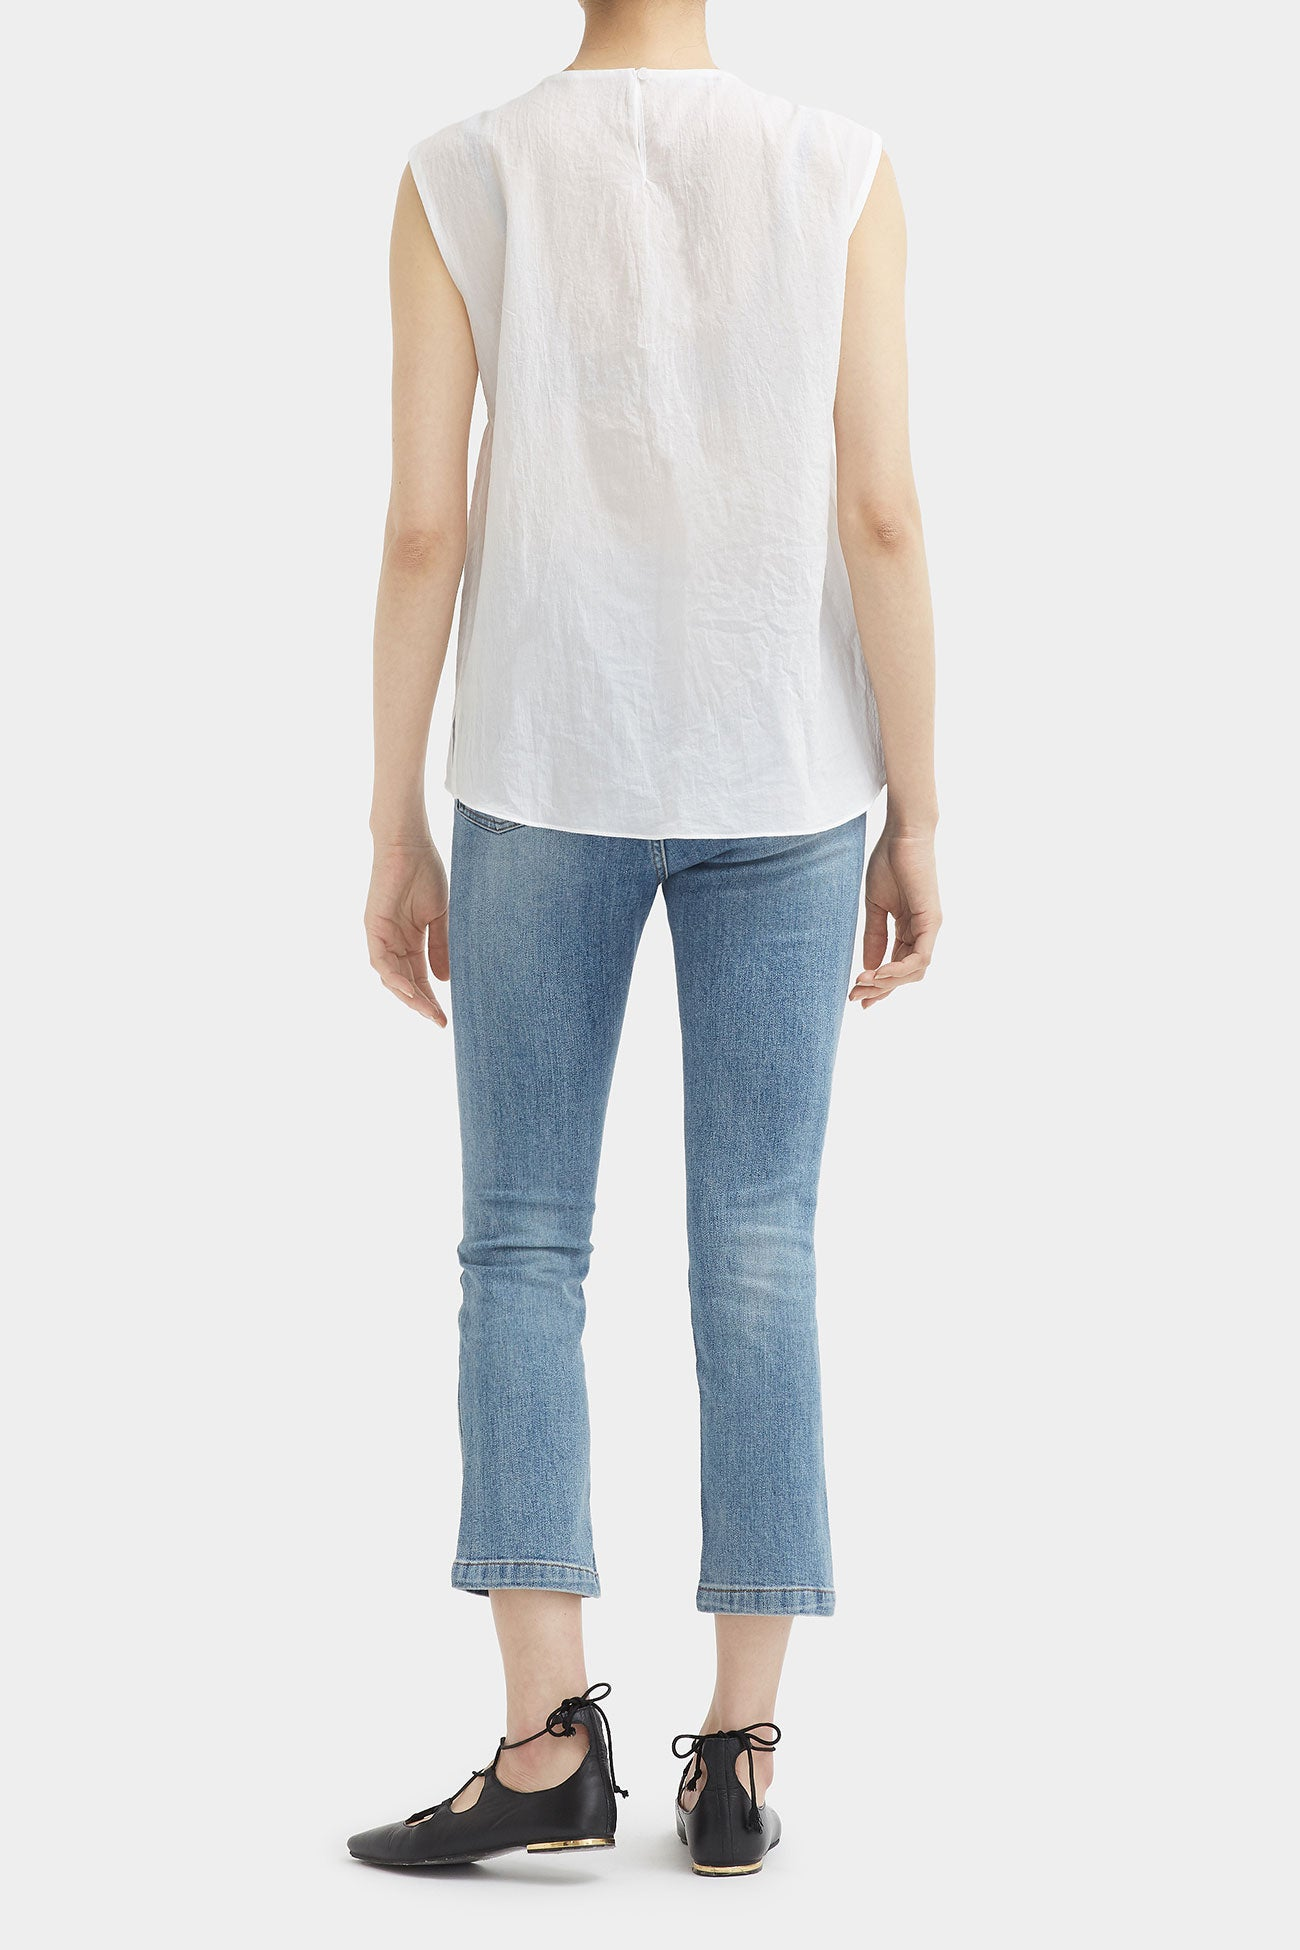 WHITE REISS LIGHT GATHER TOP